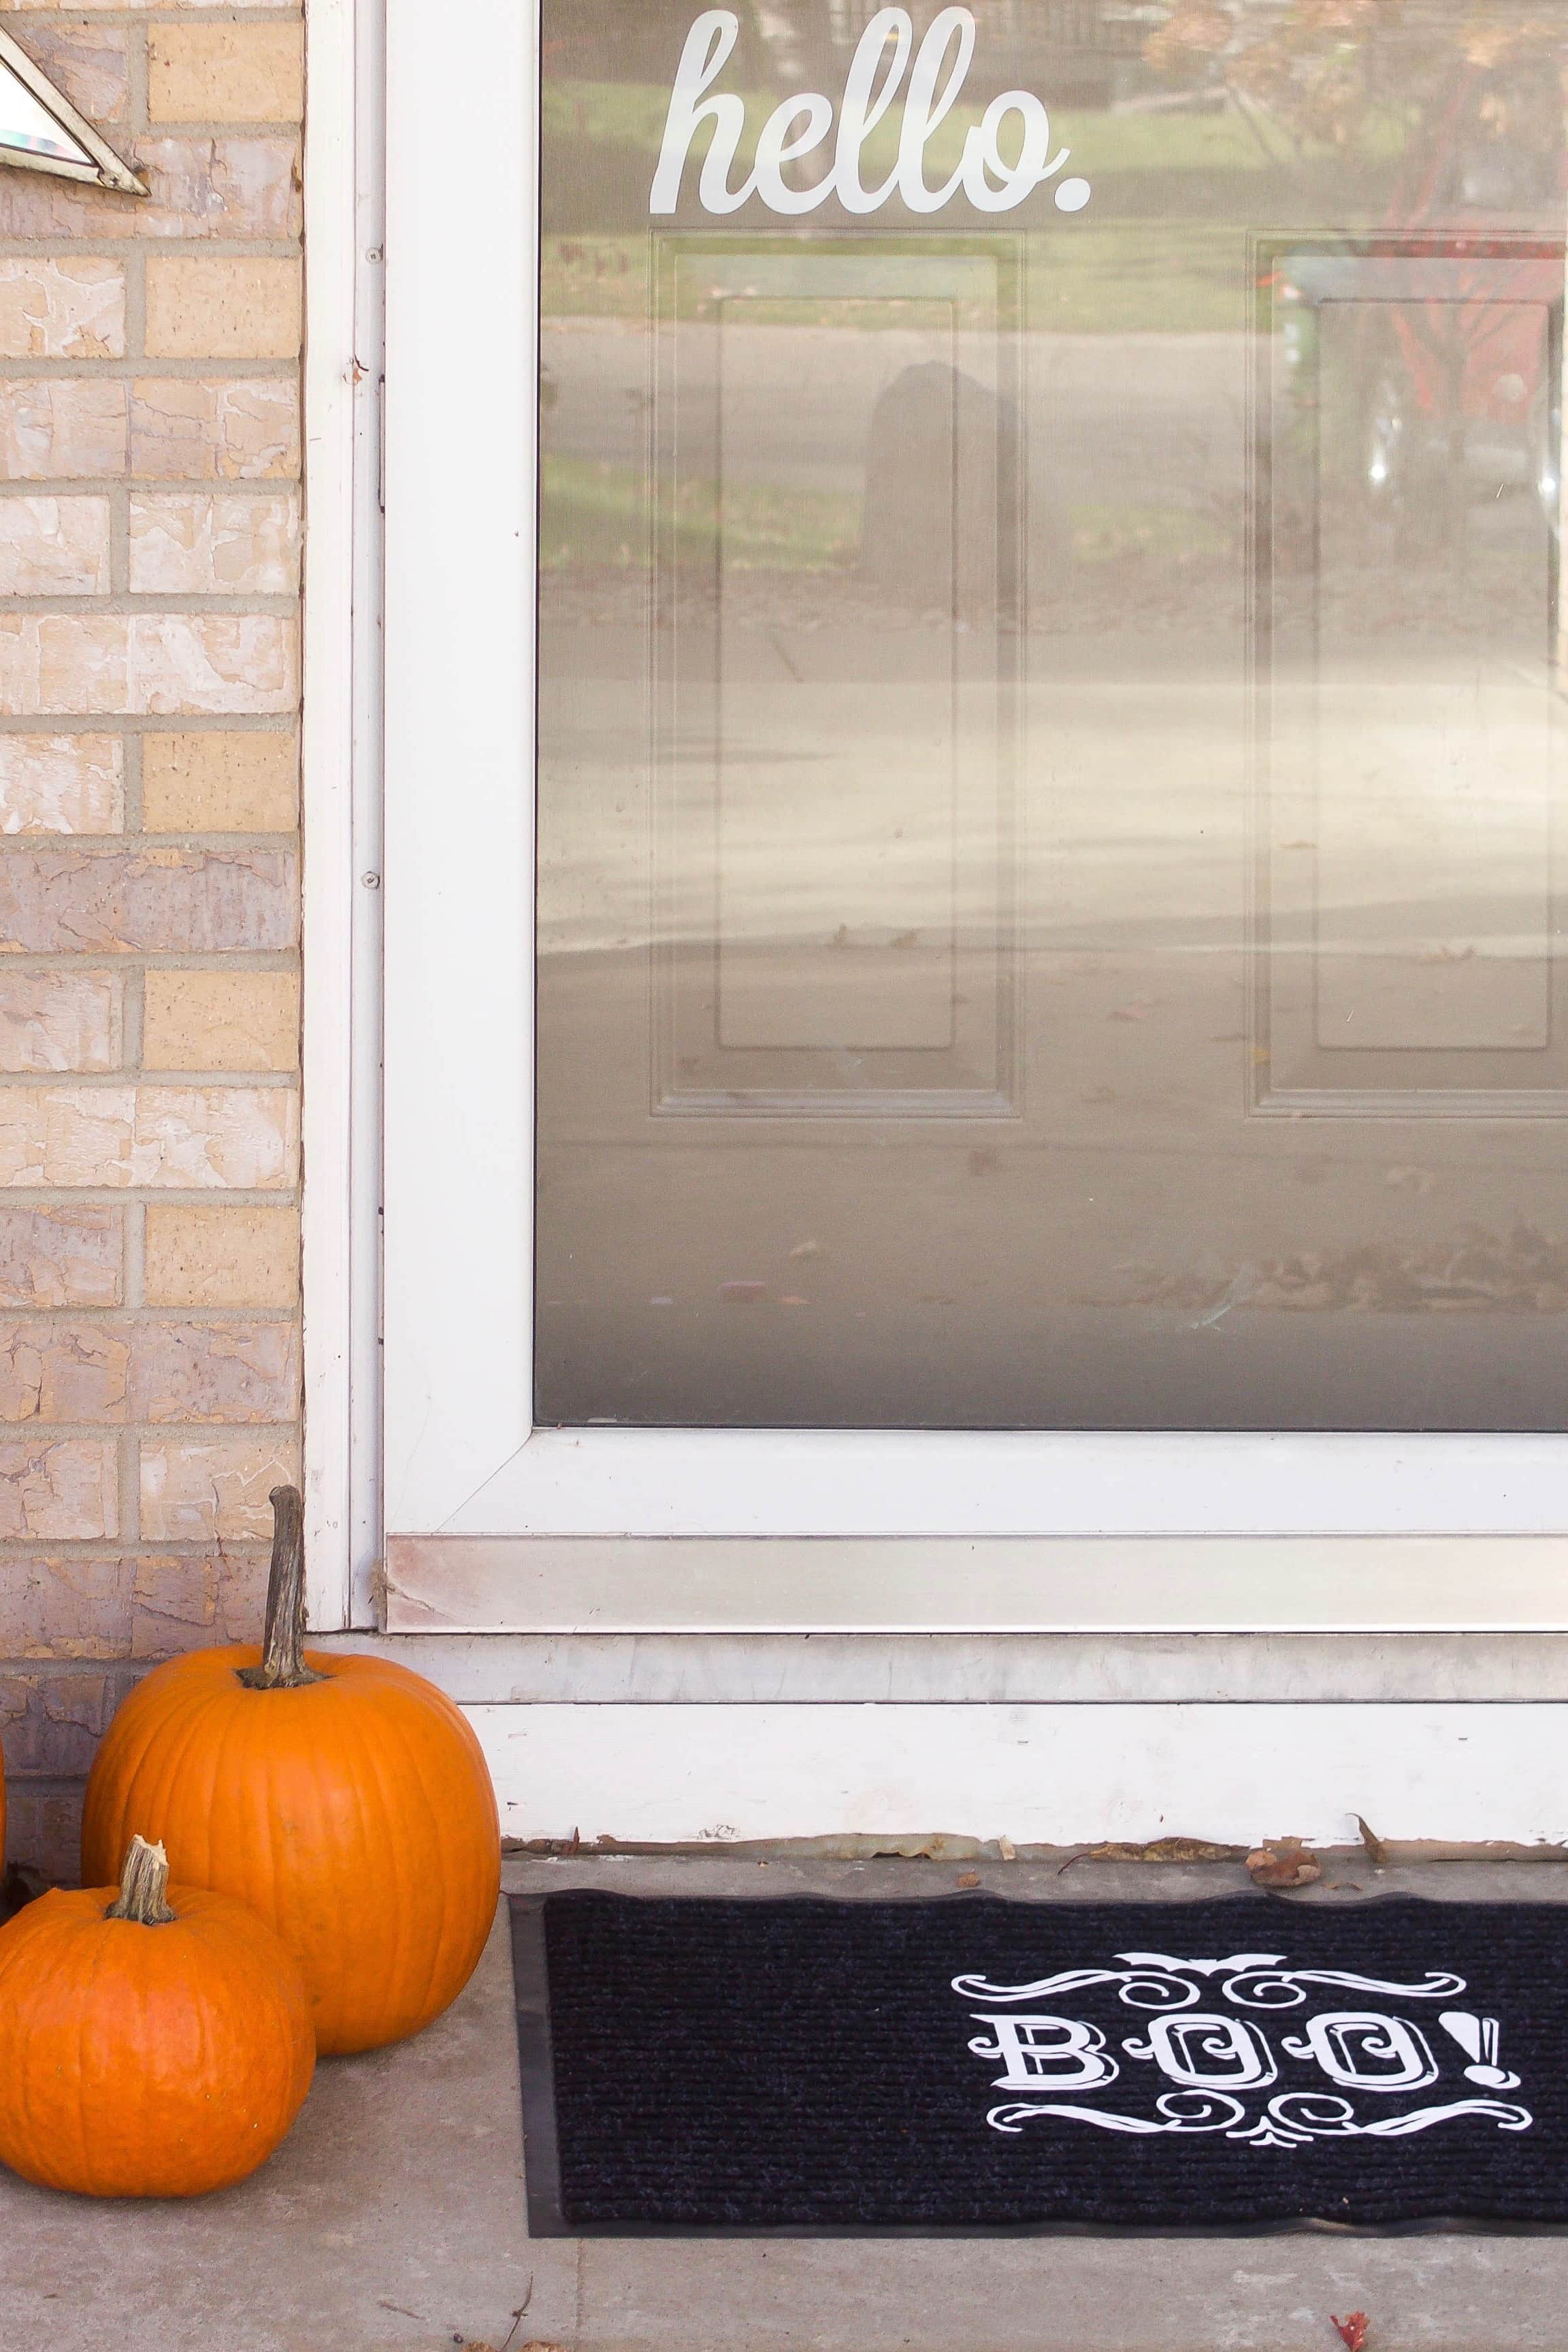 black doormat with BOO written on top sitting next to 2 pumpkins on the front porch